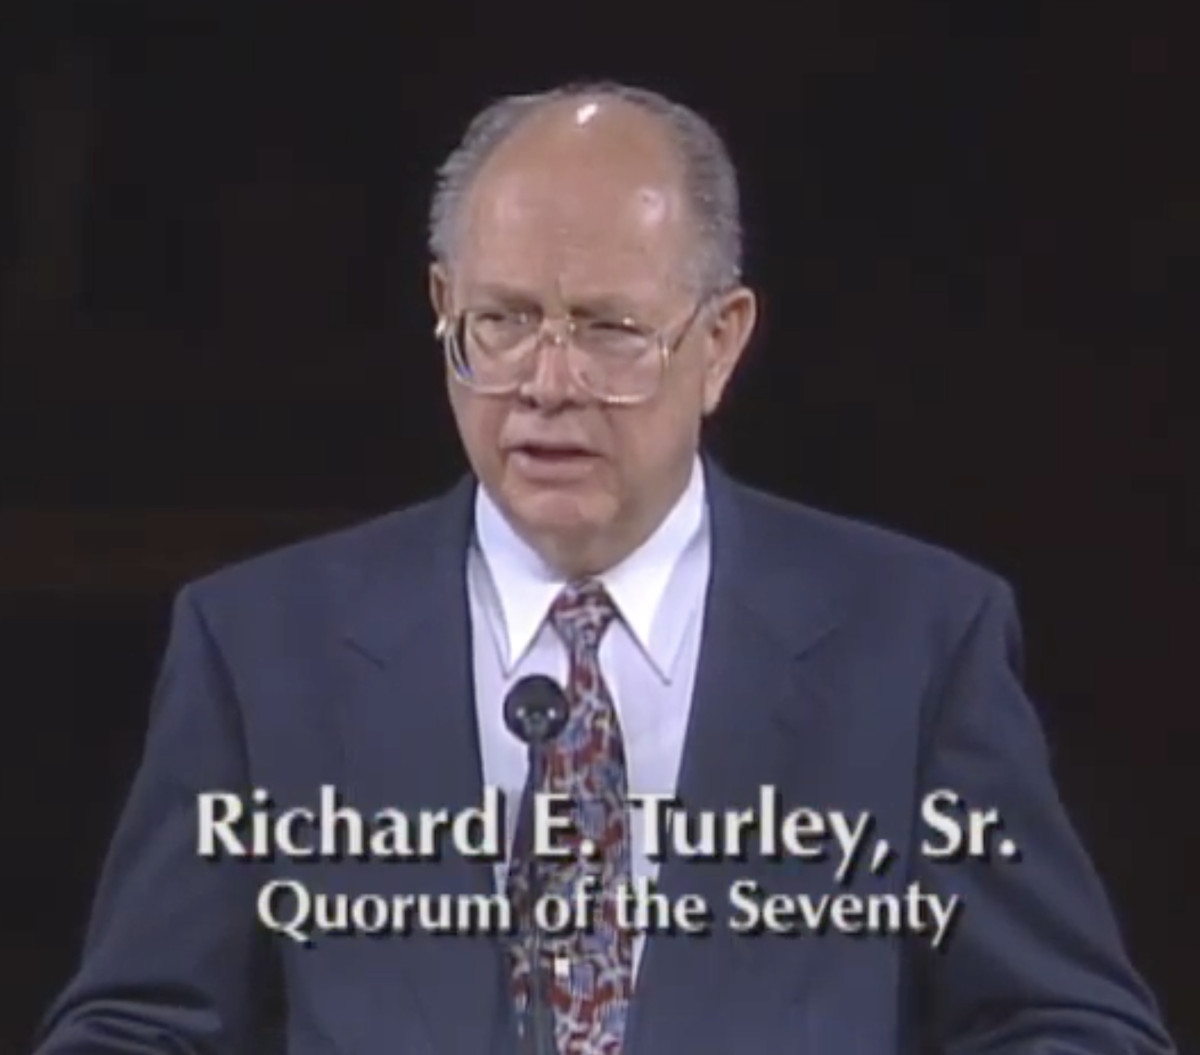 Elder Richard E. Turley, Sr., speaks at a Latter-day Saint general conference in 1998. He died Sunday at age 90.